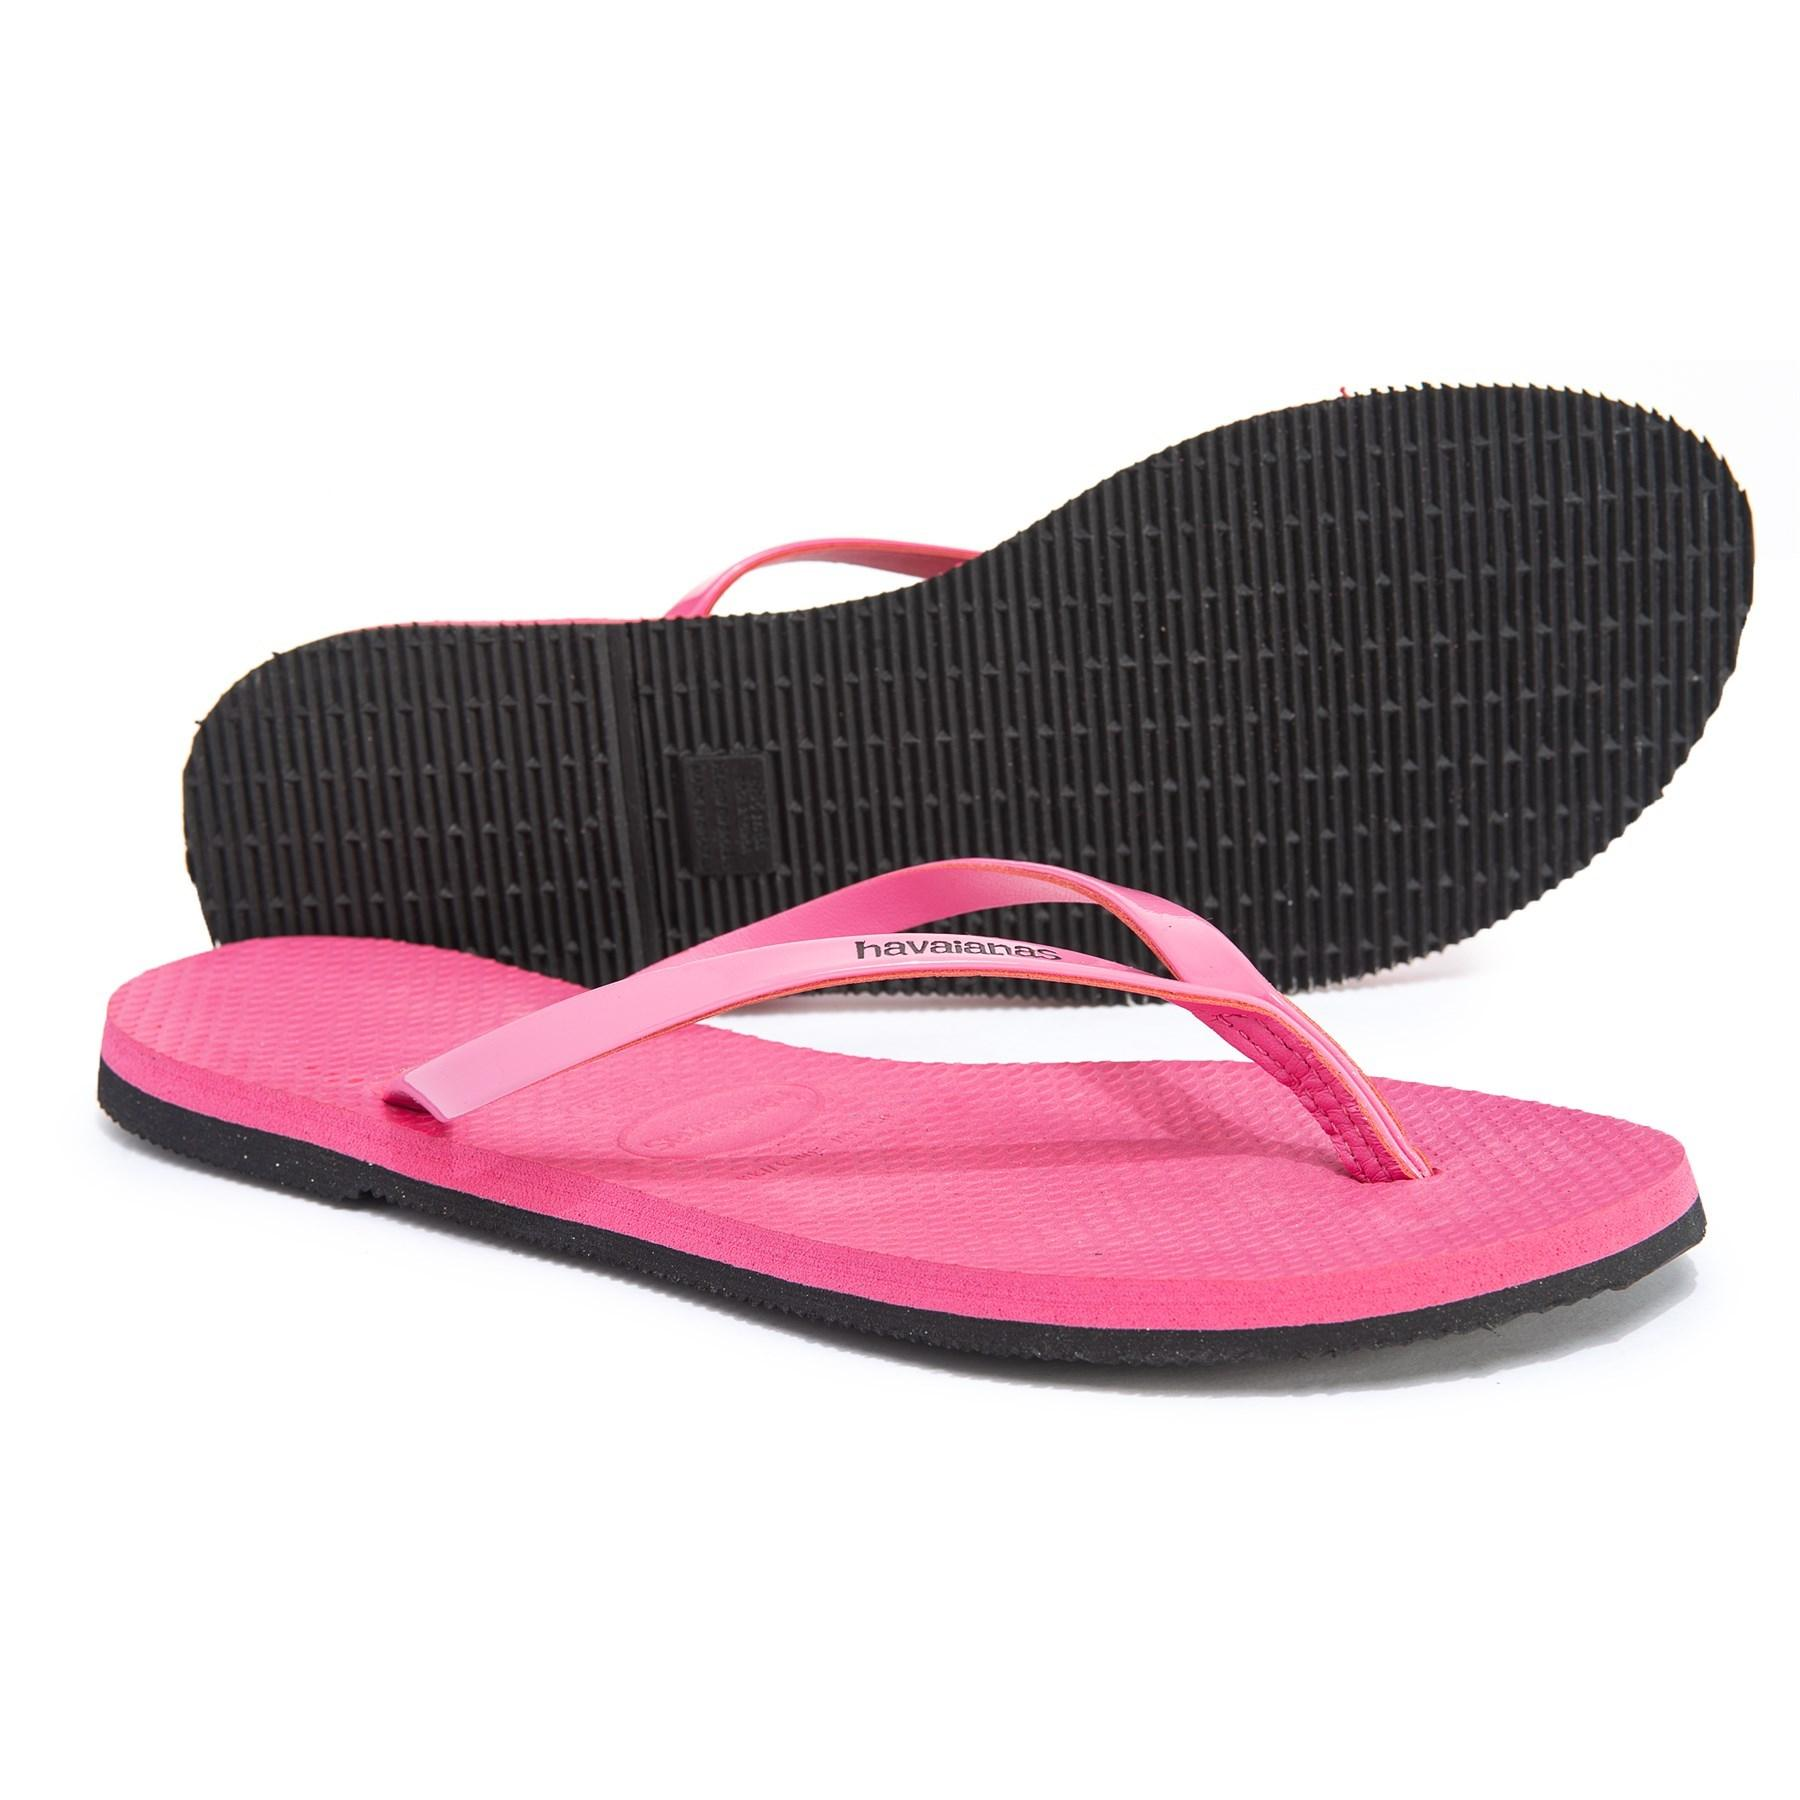 d1382bb25879ed Lyst - Havaianas You Metallic Flip-flops (for Women) in Pink - Save 48%